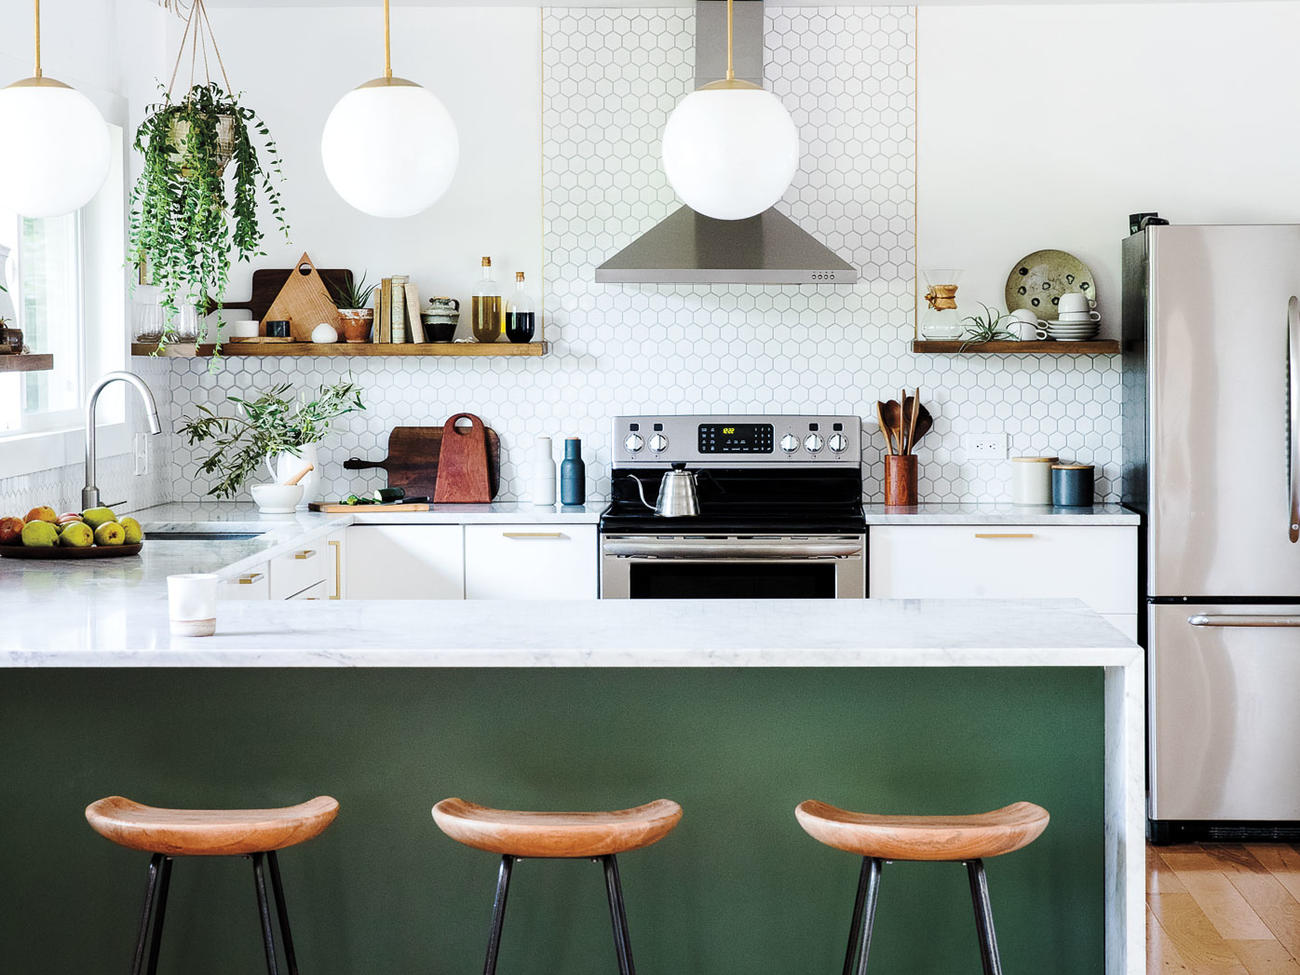 How to Renovate a Home on a Budget